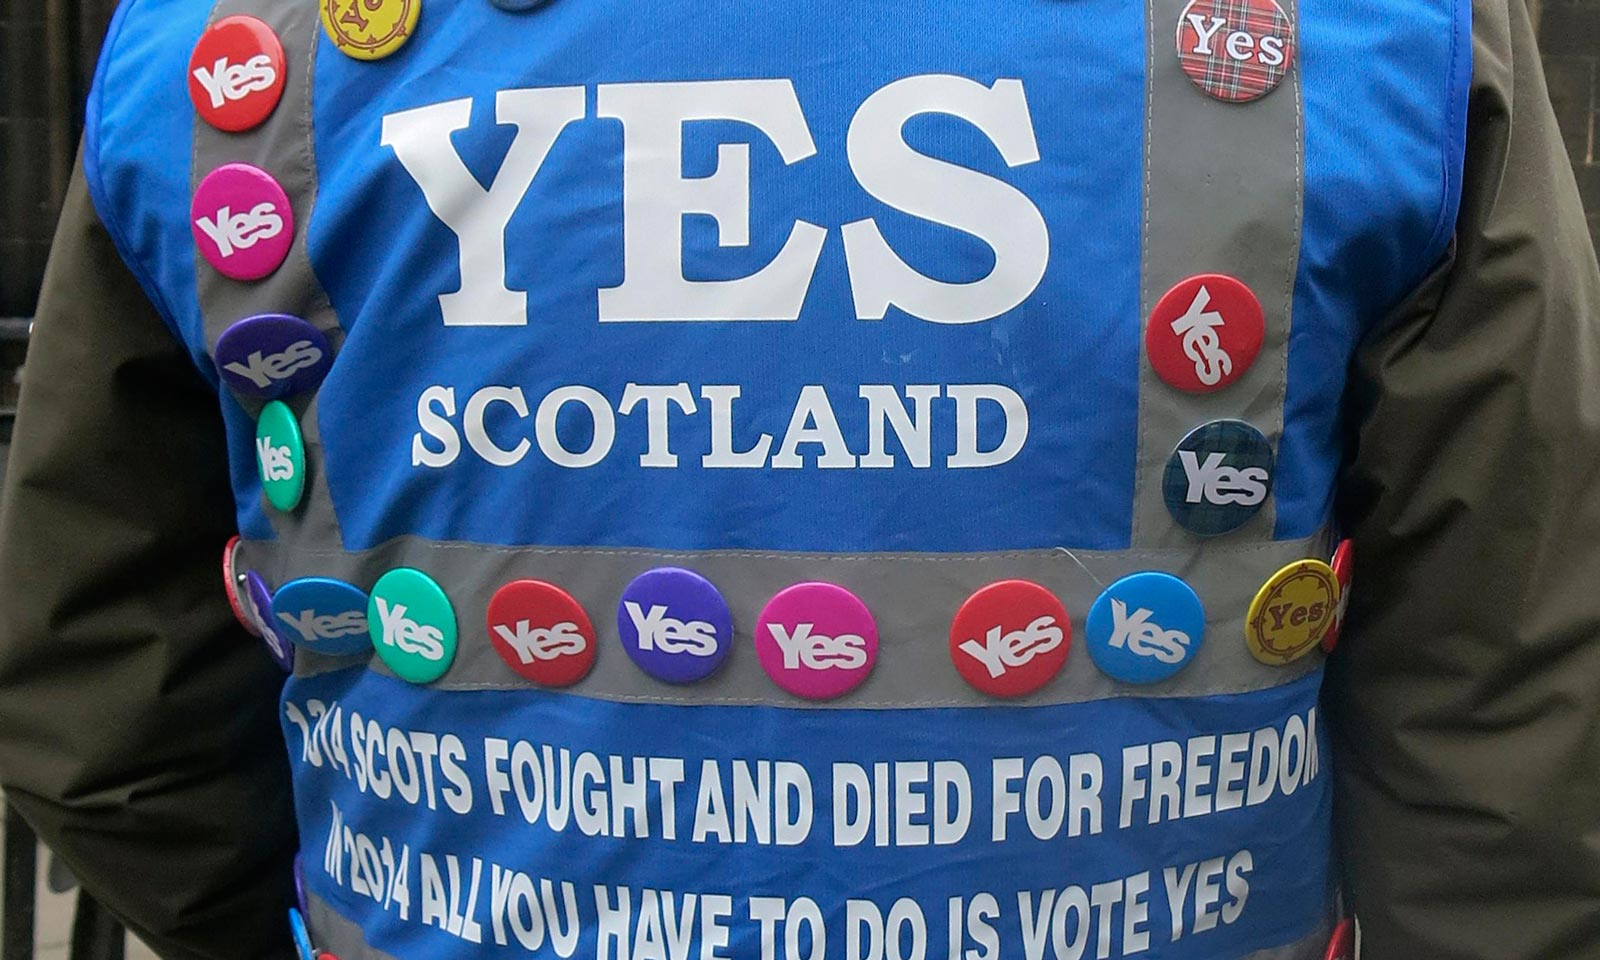 scotland-yes-campaign-009